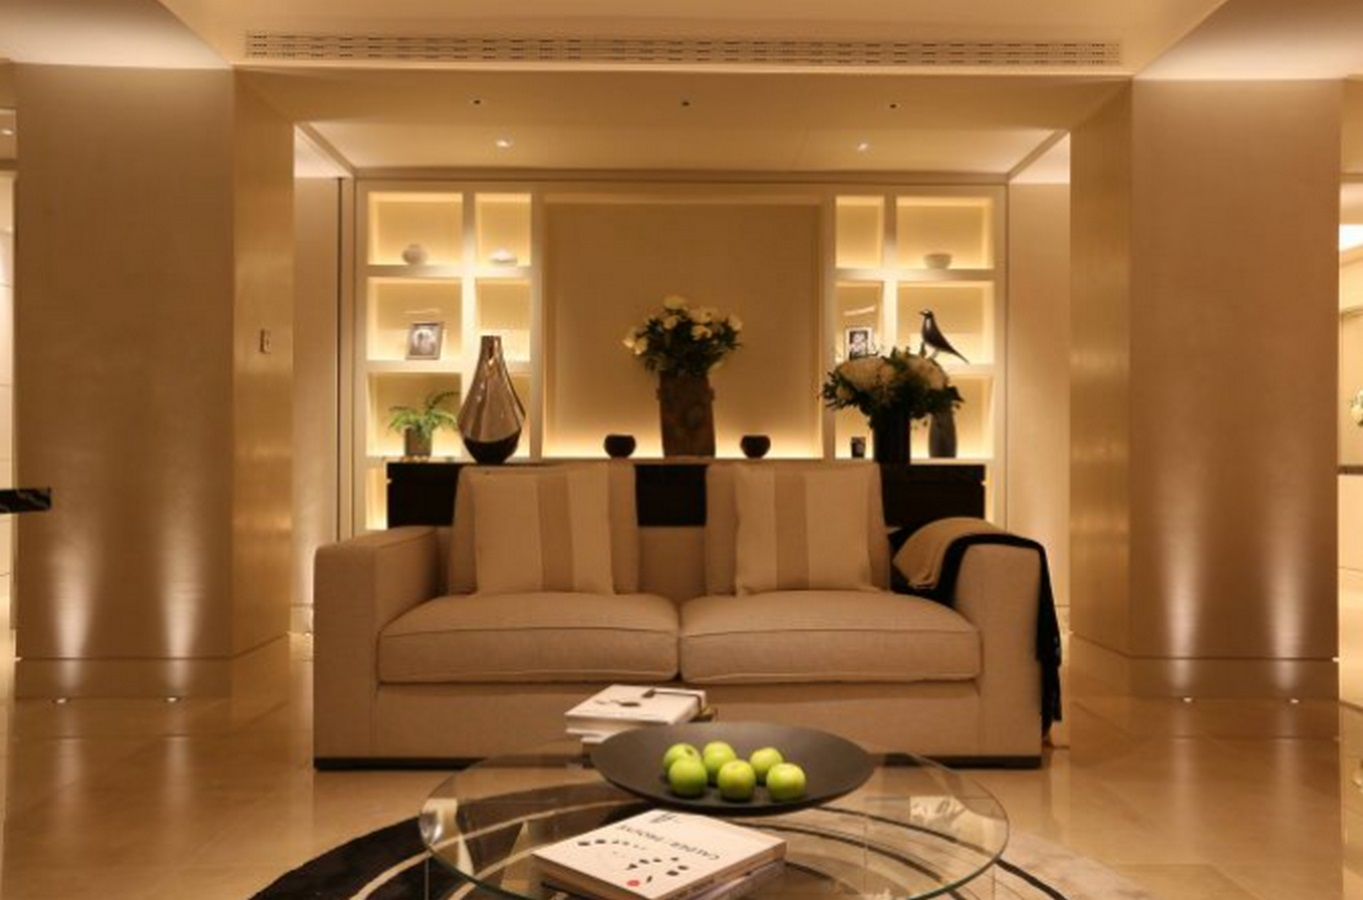 What impact can bad interiors have on its occupants? - Sheet9